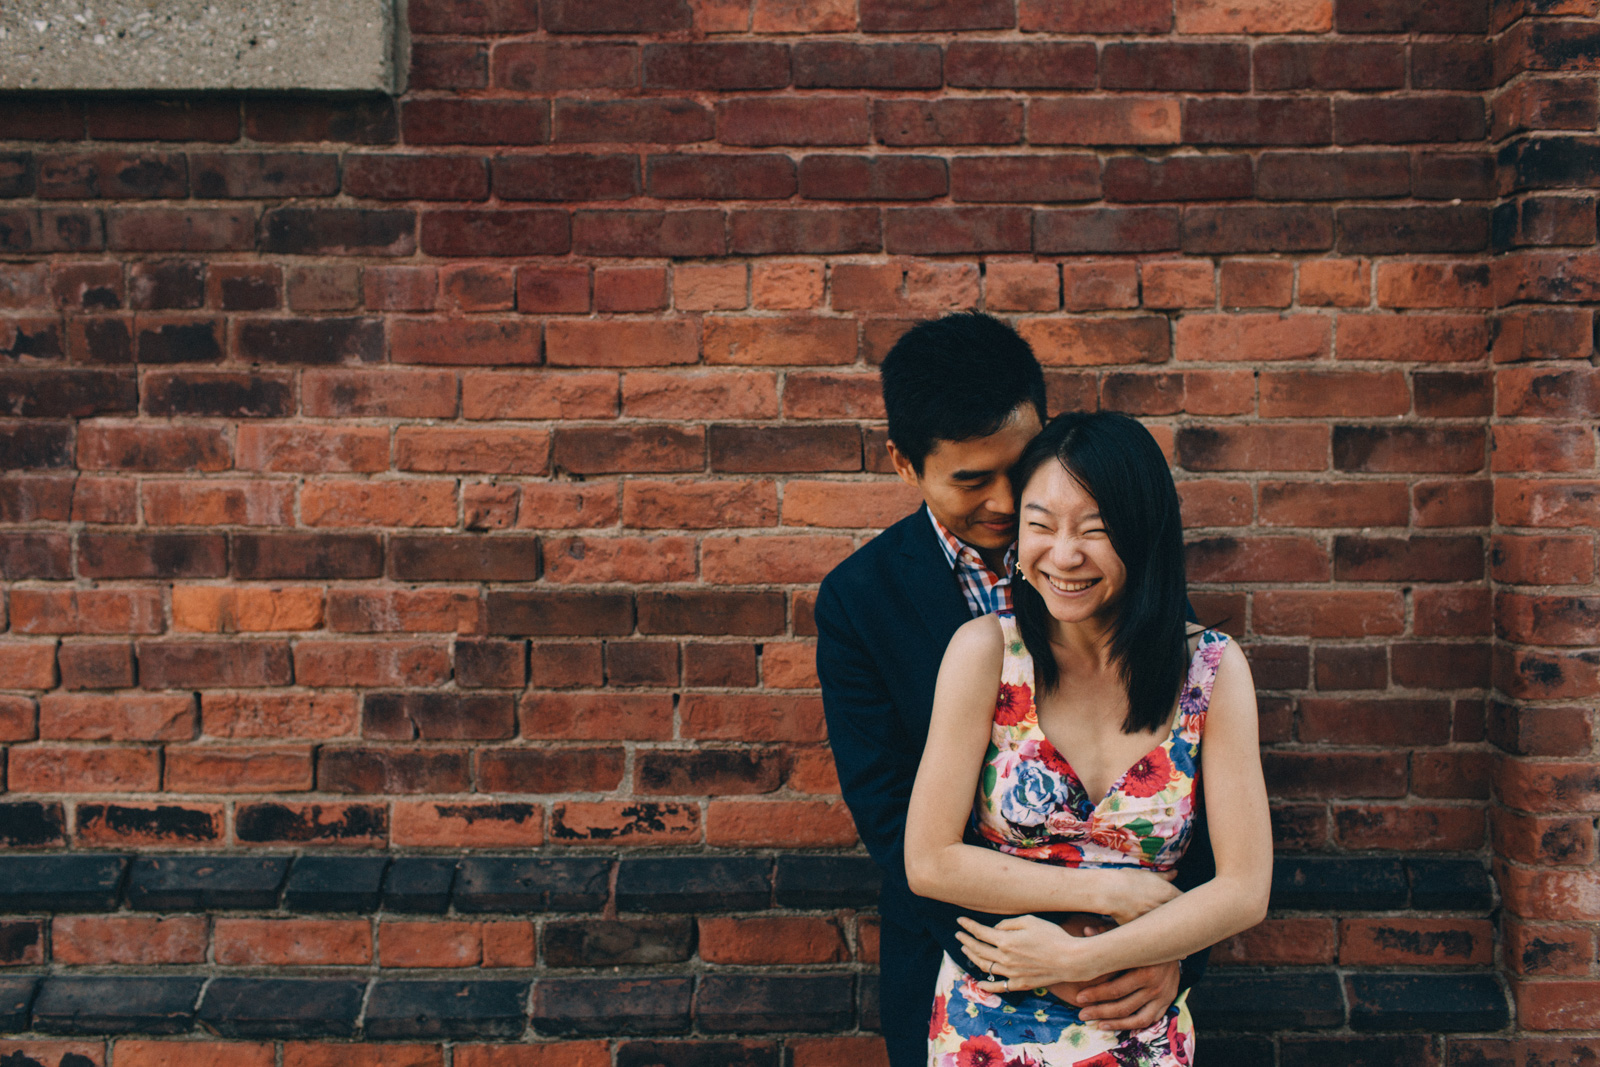 Distillery-District-engagement-photos-Toronto-wedding-photography-by-Sam-Wong-of-Artanis-Collective_011.jpg